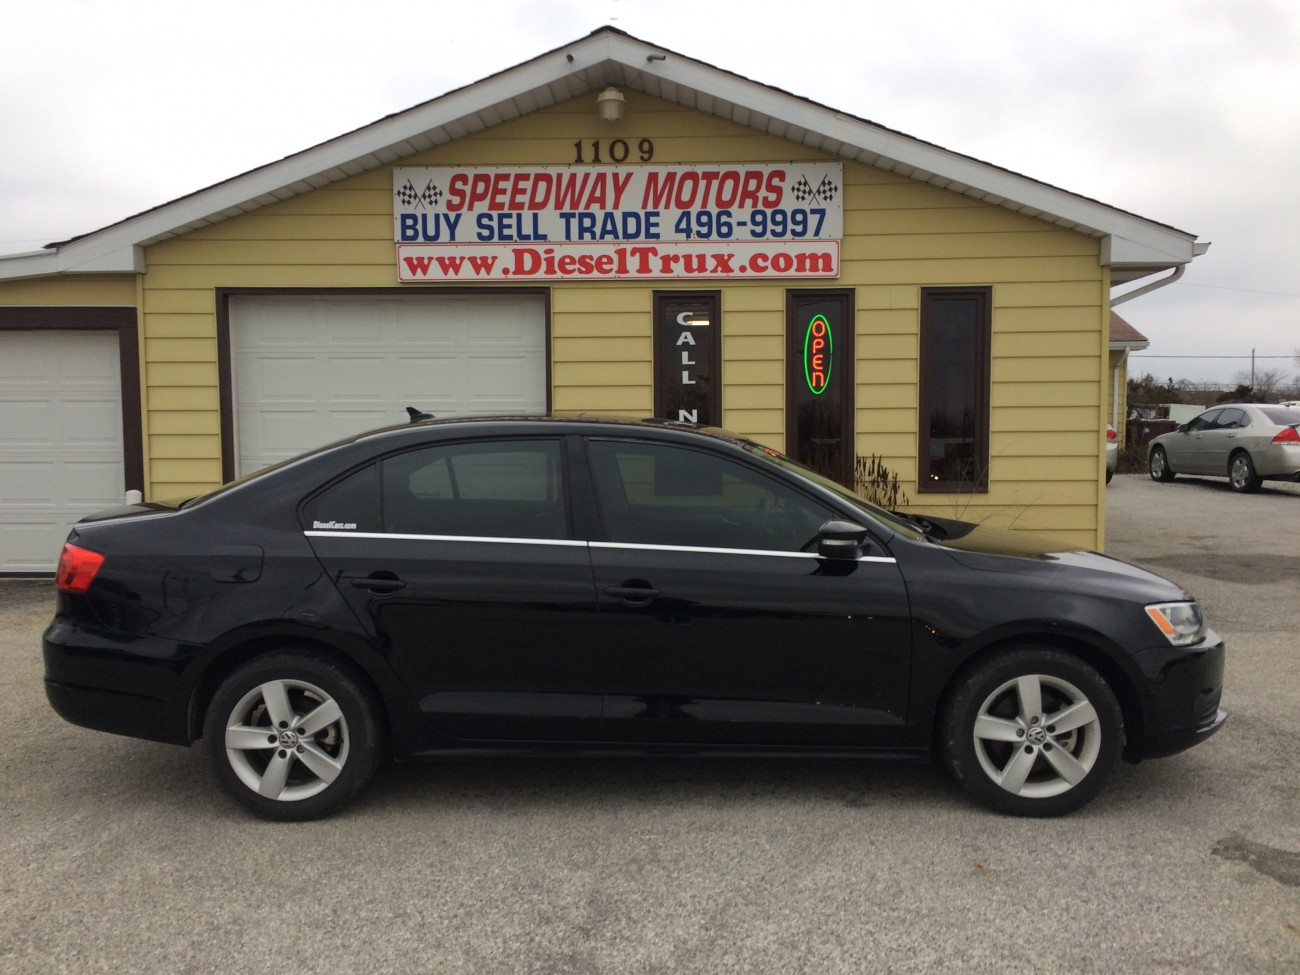 2013 vw jetta automatic tdi diesel browse the lot speedway motors. Black Bedroom Furniture Sets. Home Design Ideas